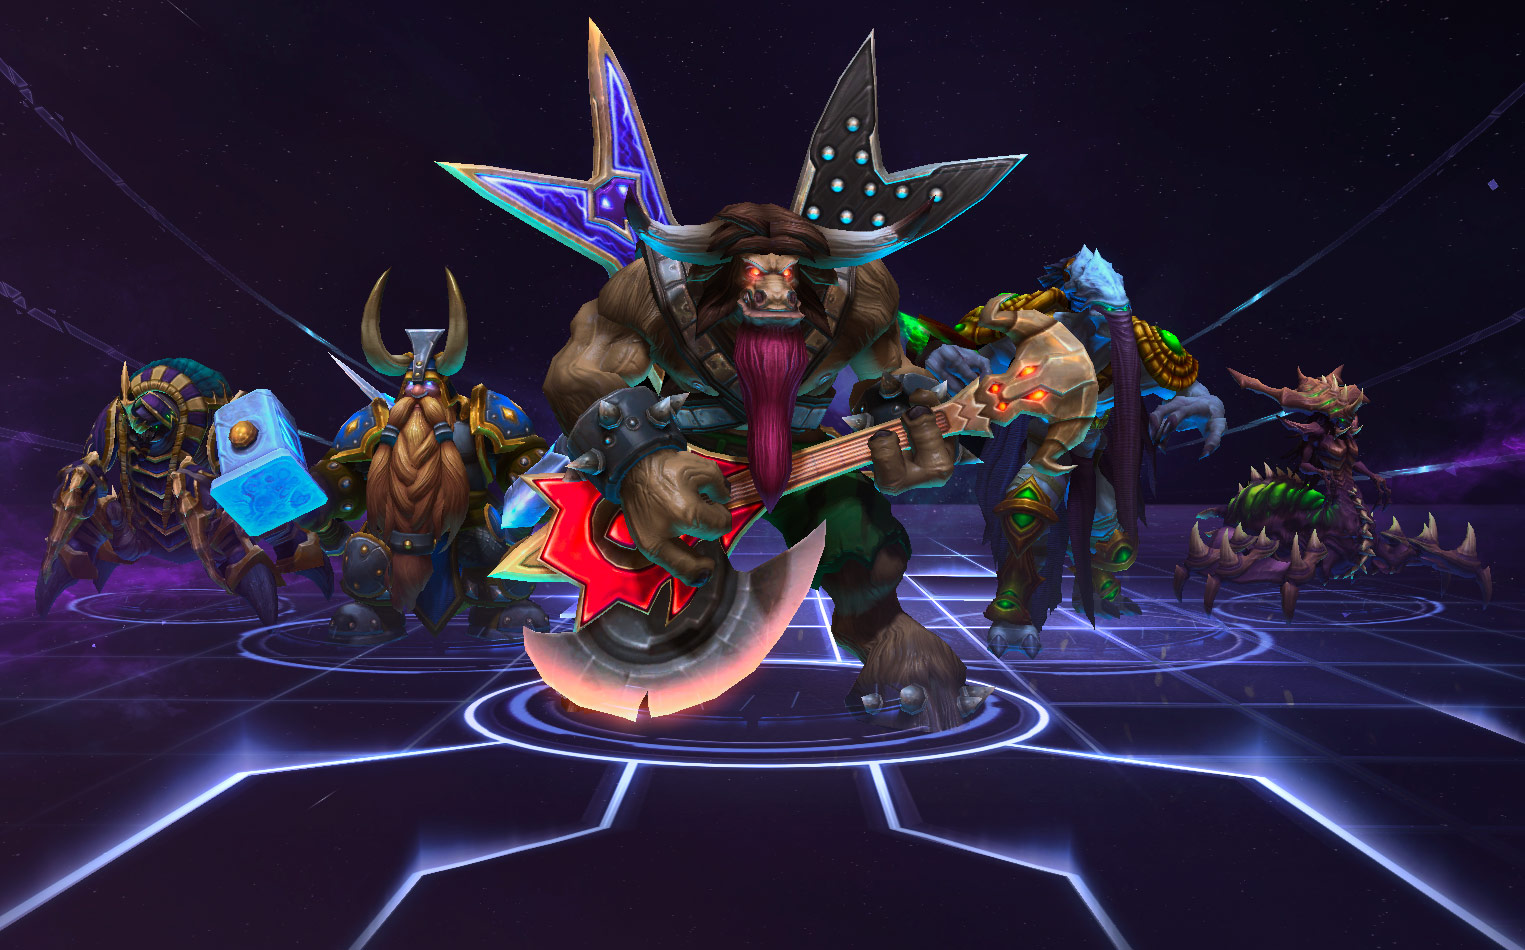 Heroes of the Storm: How to avoid the grind and get the most gold in the least time